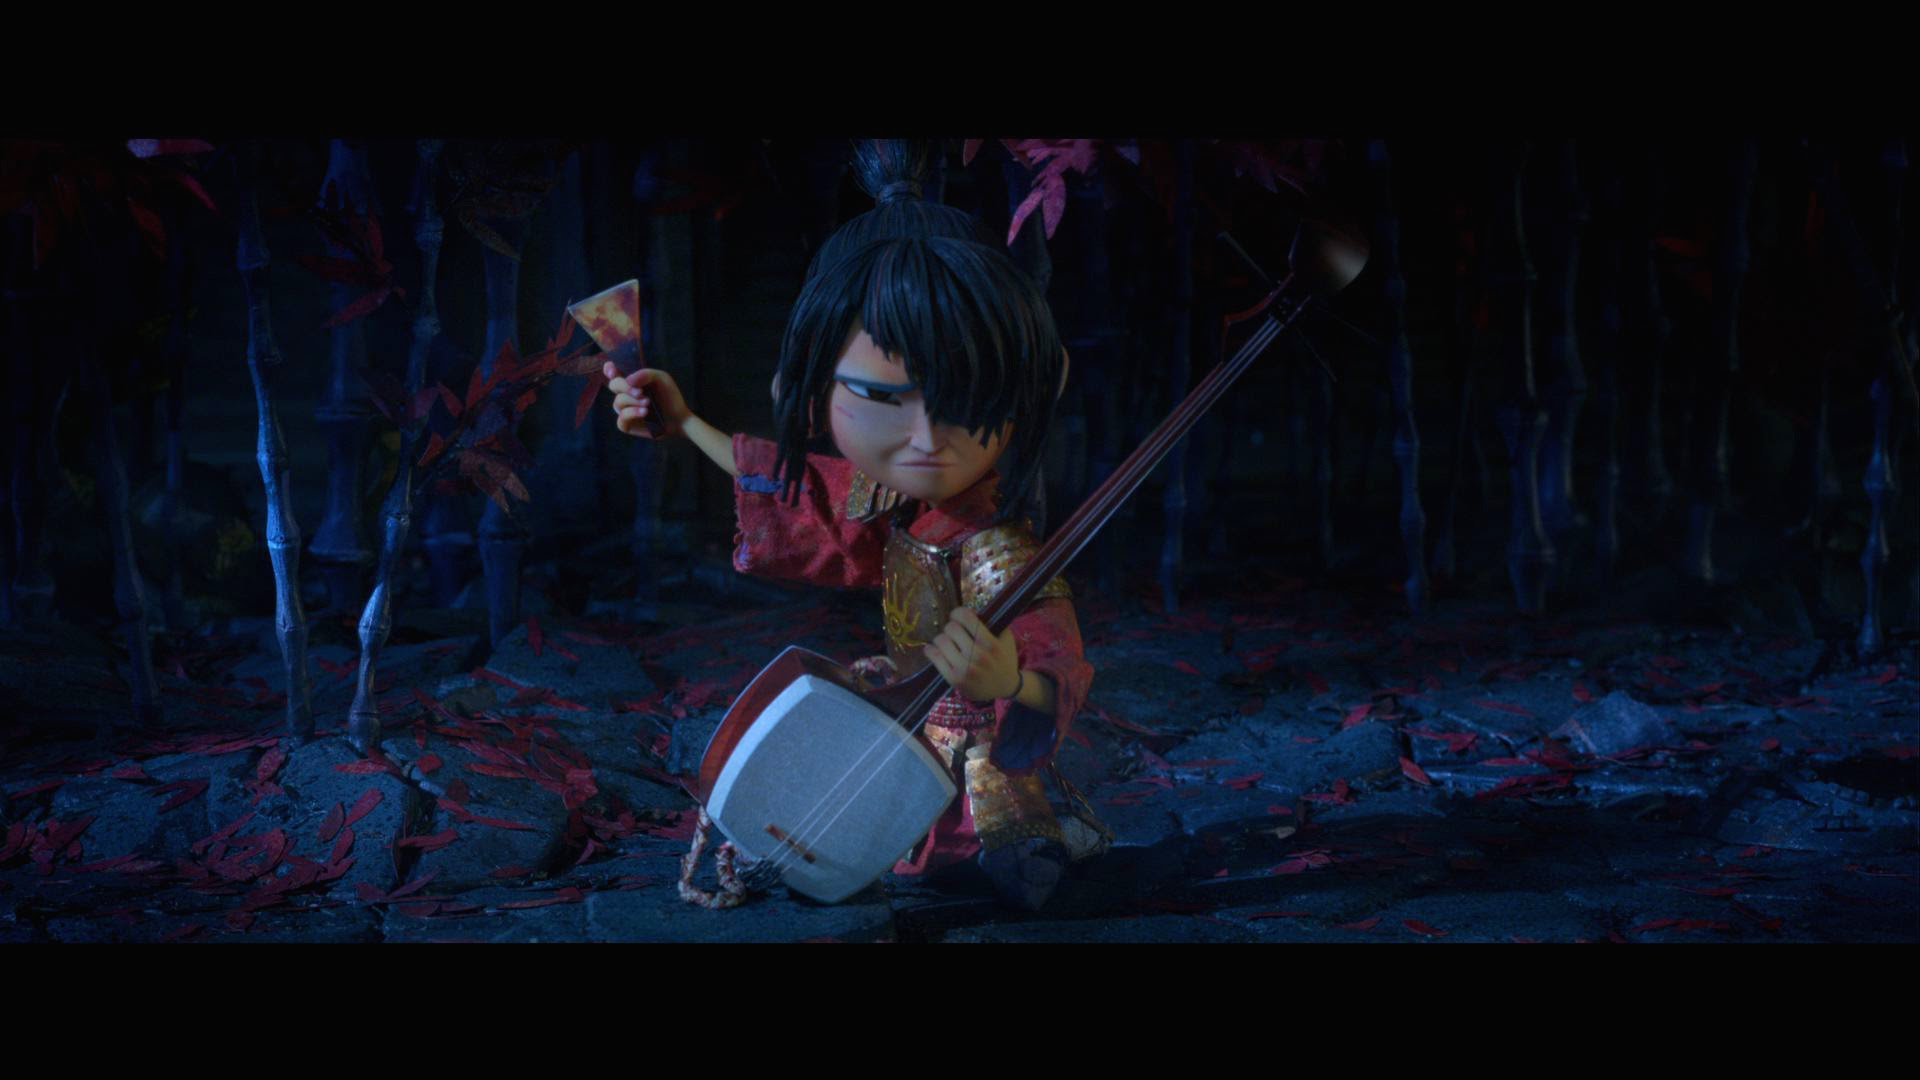 Kubo And The Two Strings Review - OC Movie Reviews - Movie Reviews, Movie News, Documentary Reviews, Short Films, Short Film Reviews, Trailers, Movie Trailers, Interviews, film reviews, film news, hollywood, indie films, documentaries